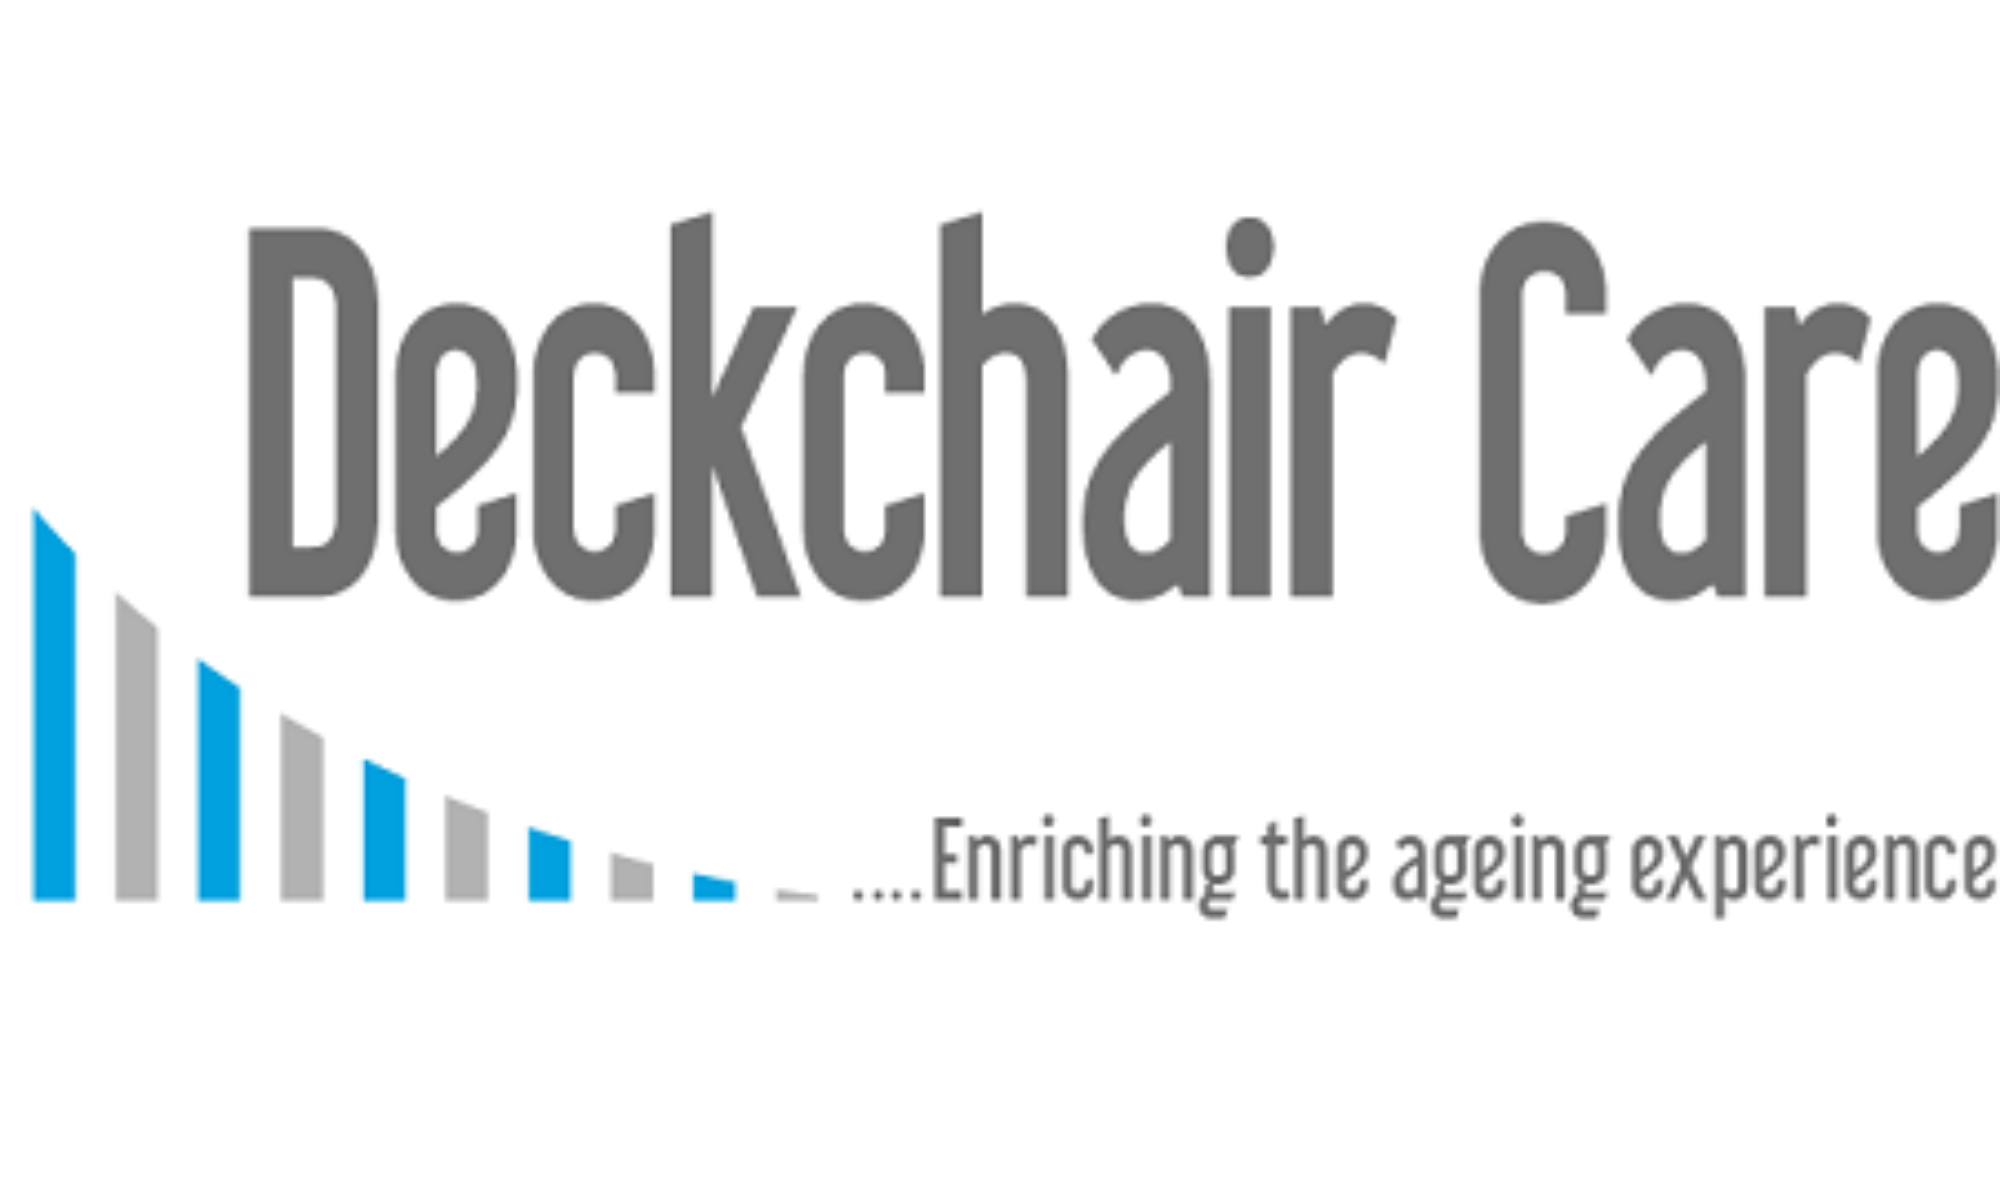 Deckchair Care - Home Care Agency